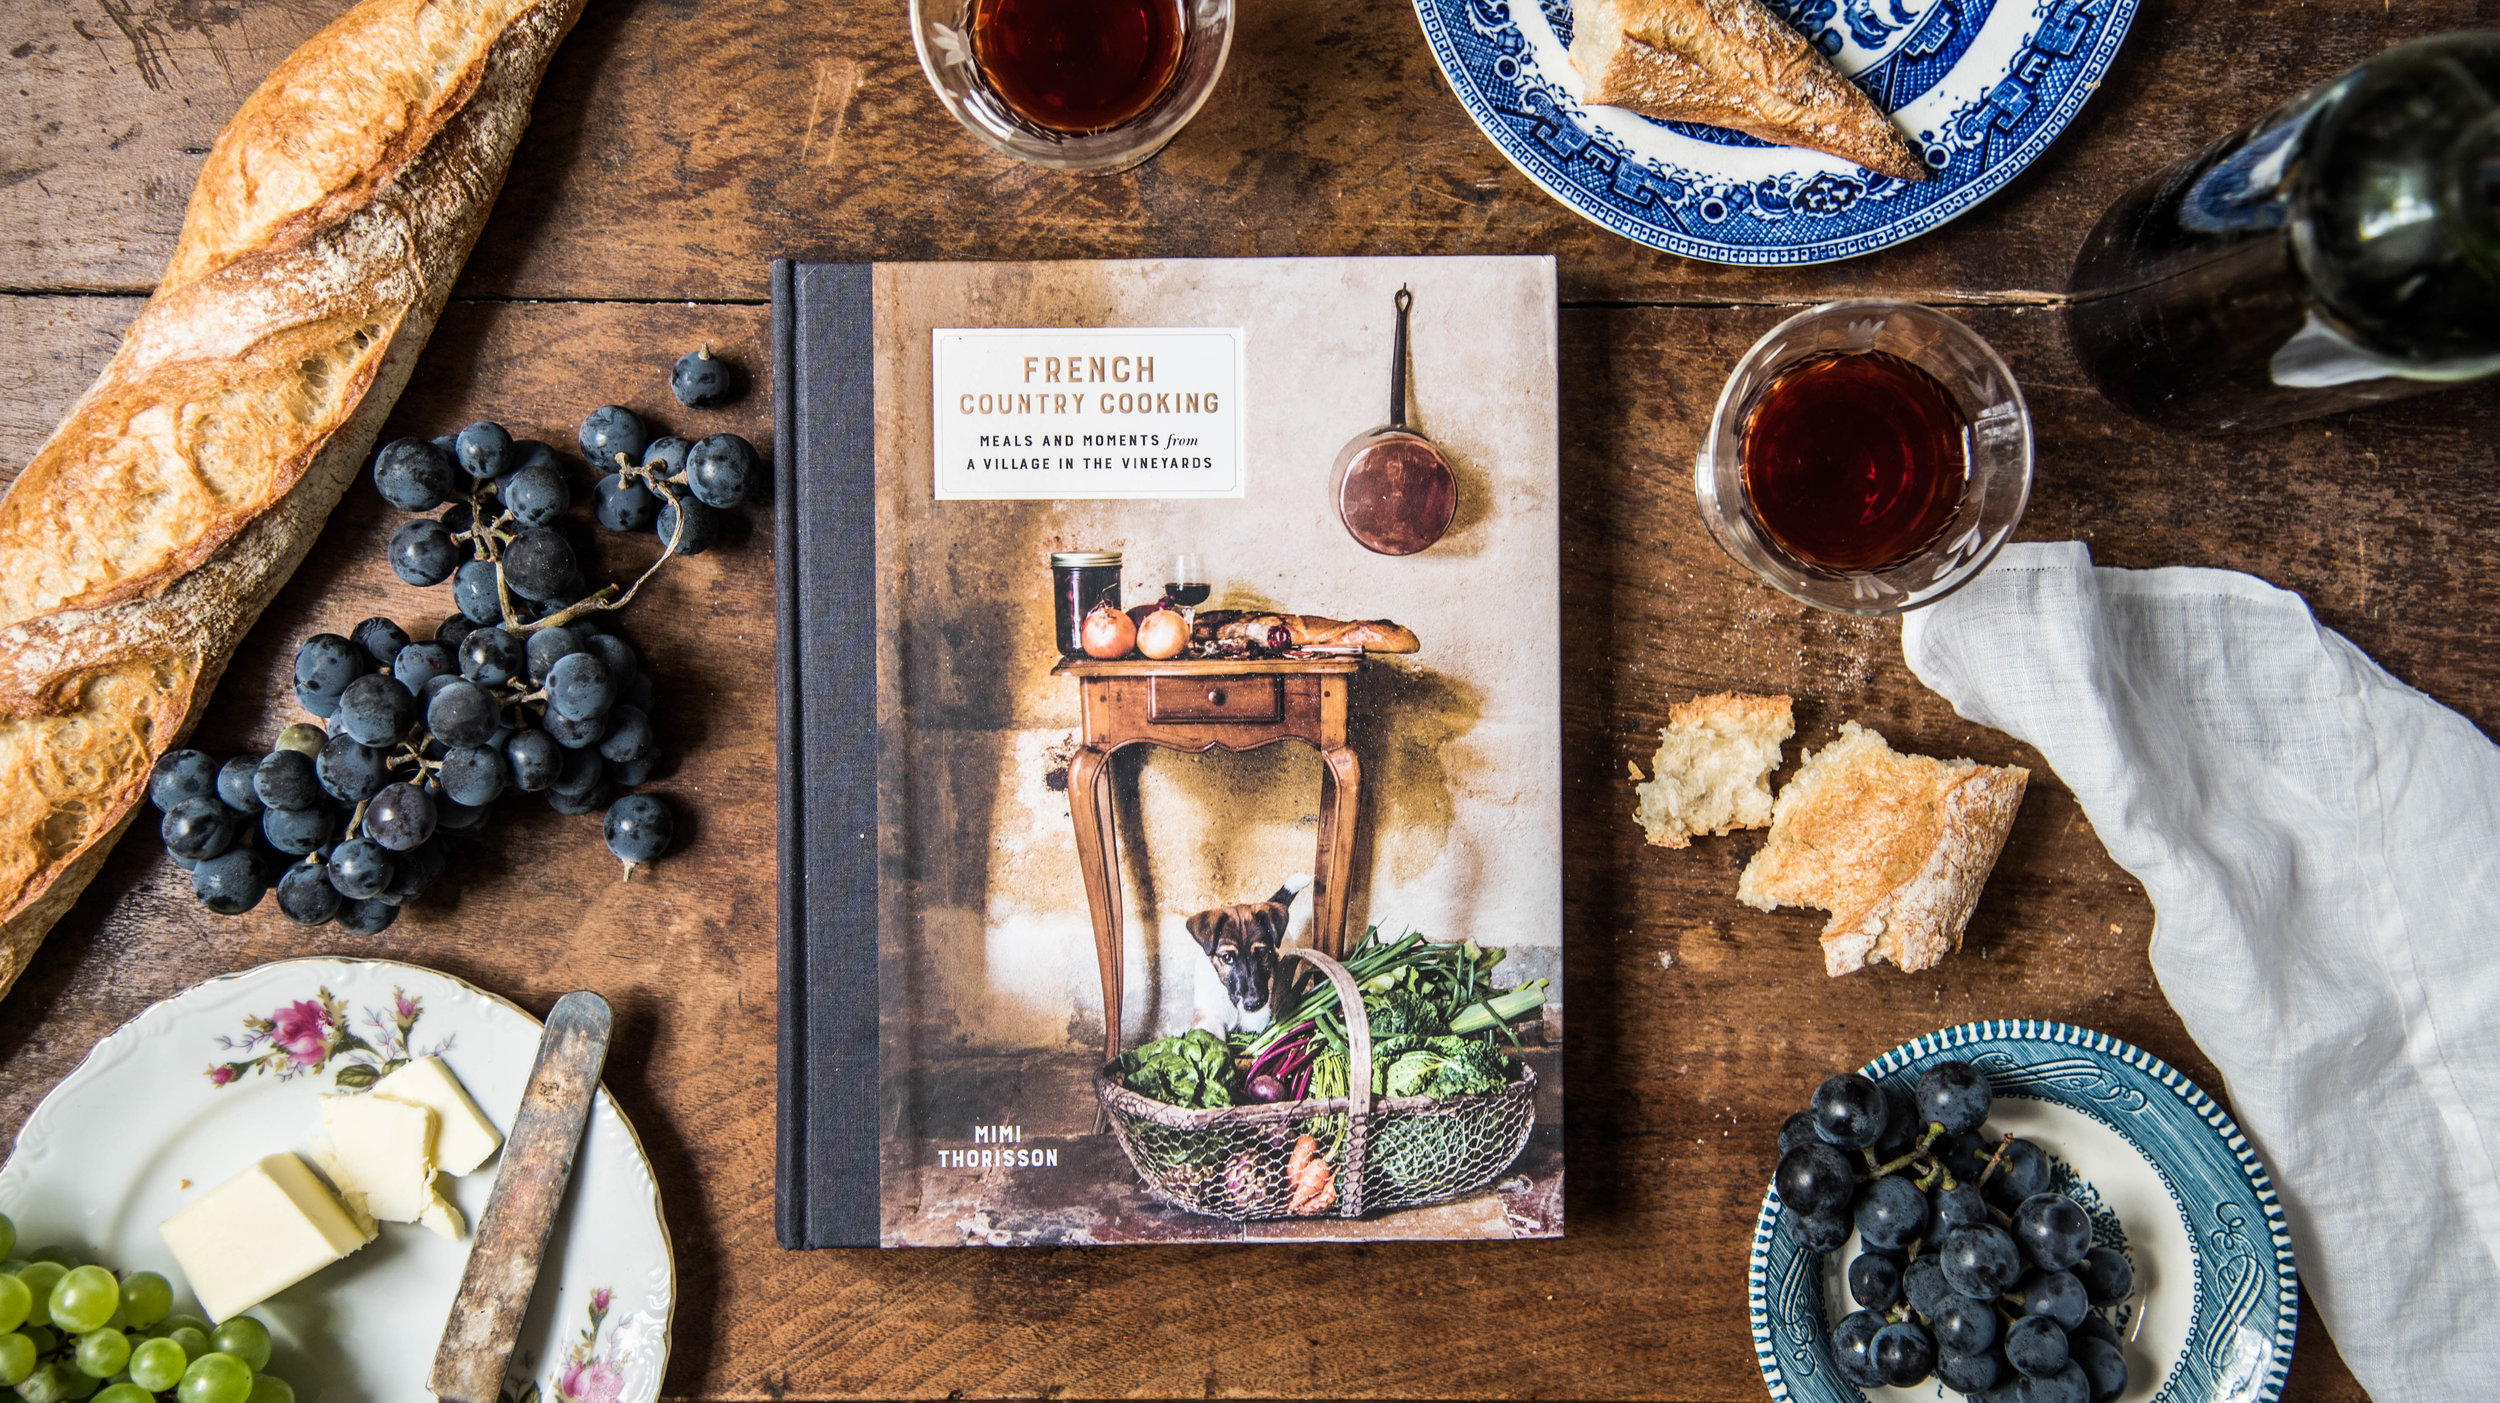 ROSE & IVY Journal New Cookbooks for Fall Mimi Thorrison  French Country Cooking